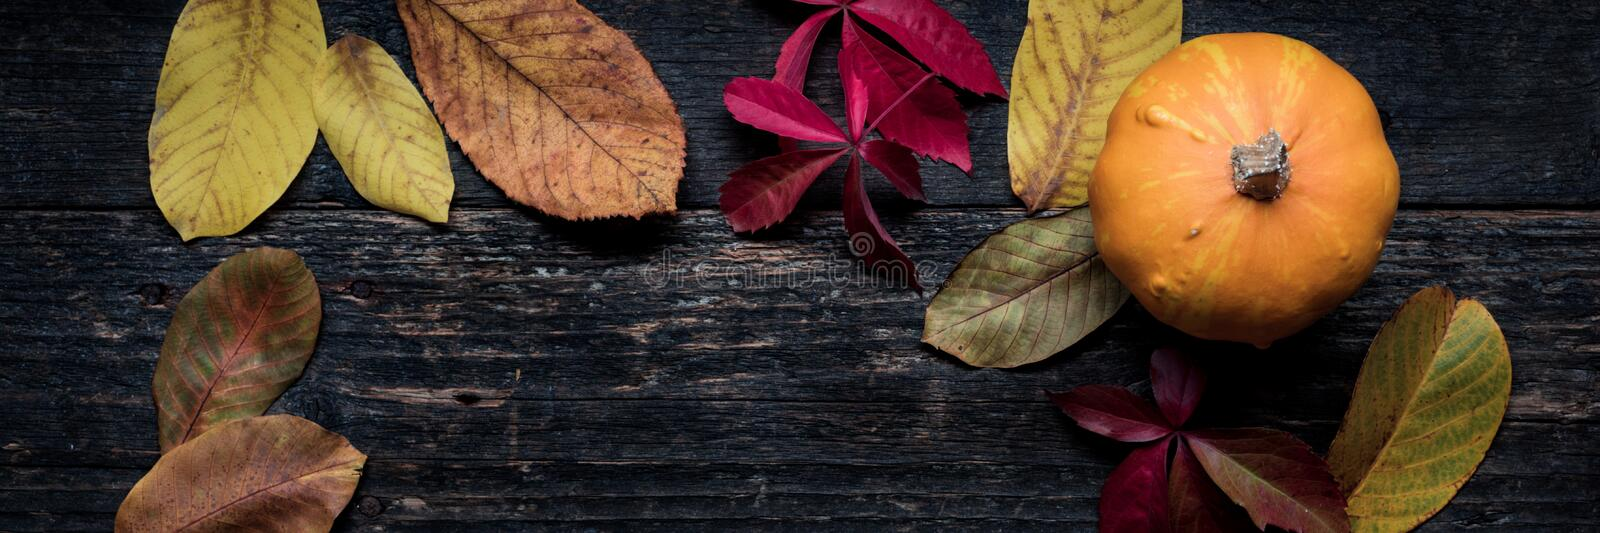 Autumn Harvest and Holiday still life. Happy Thanksgiving Banner. Pumpkin and fallen leaves on dark wooden background. Autumn vegetables and seasonal royalty free stock image